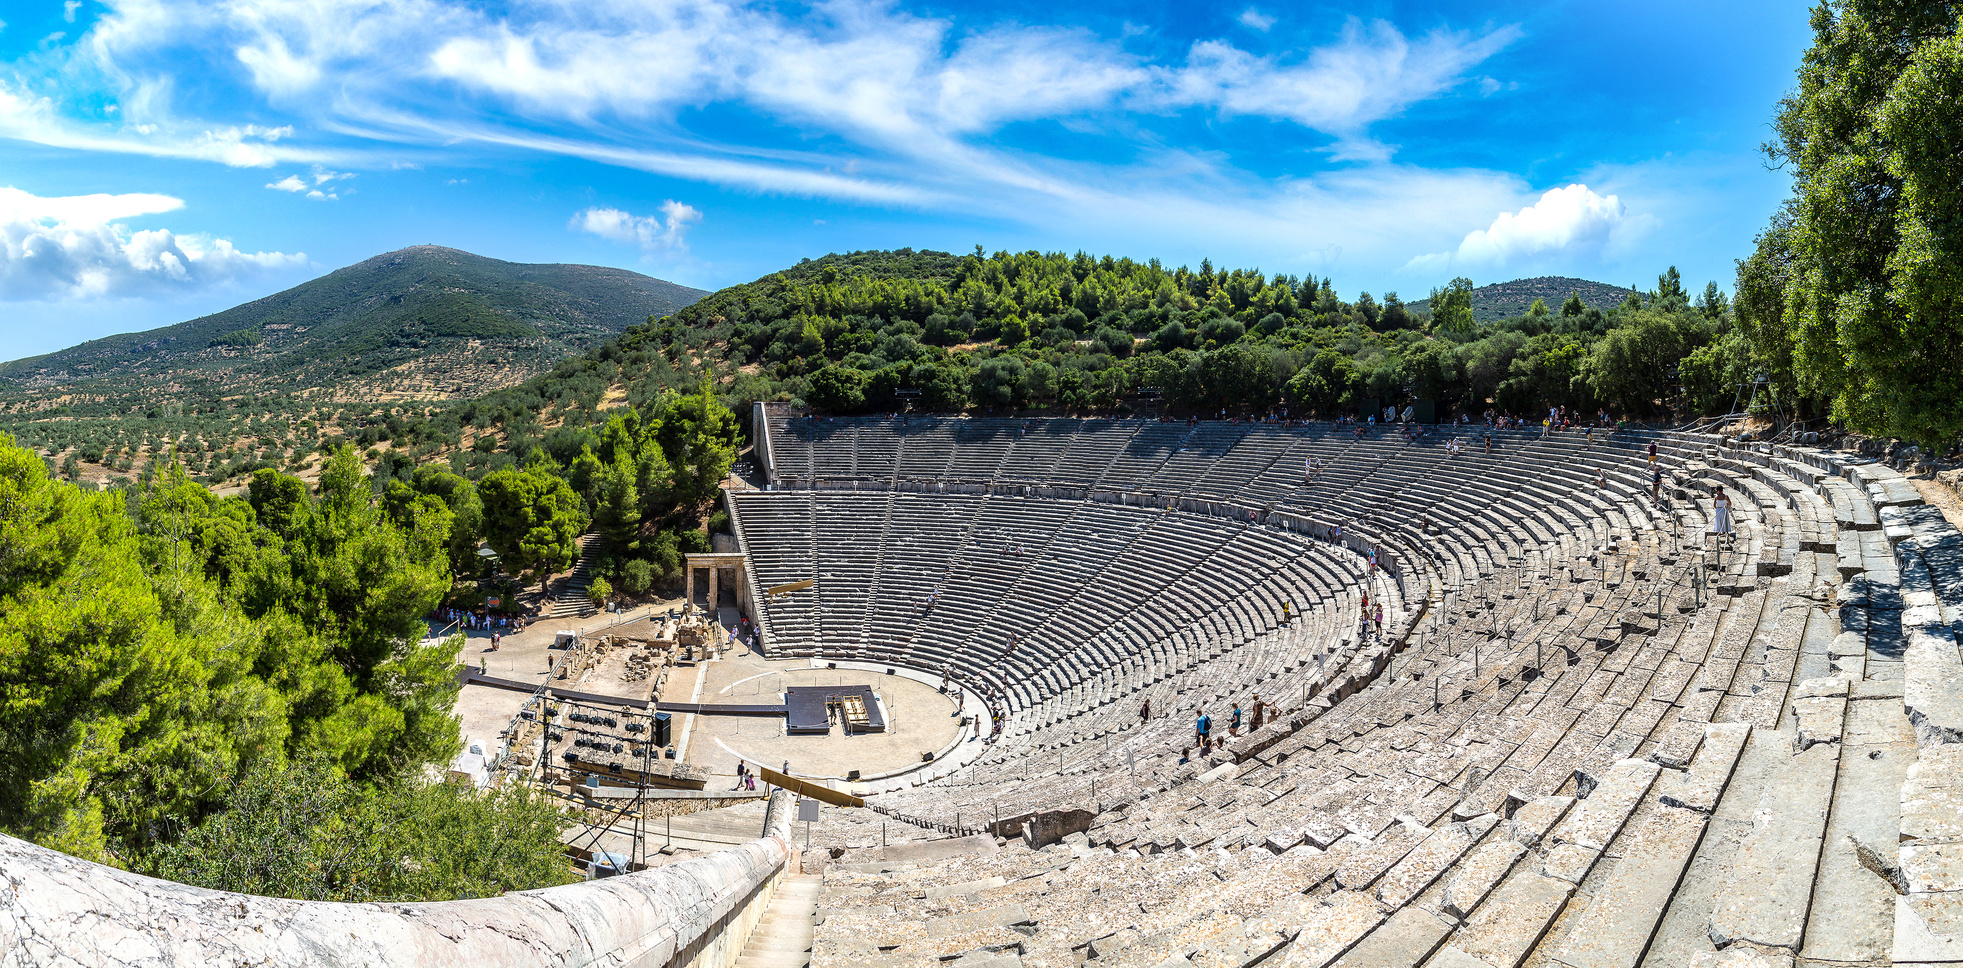 A Yacht Charter Athens - visit Epidaurus by boat